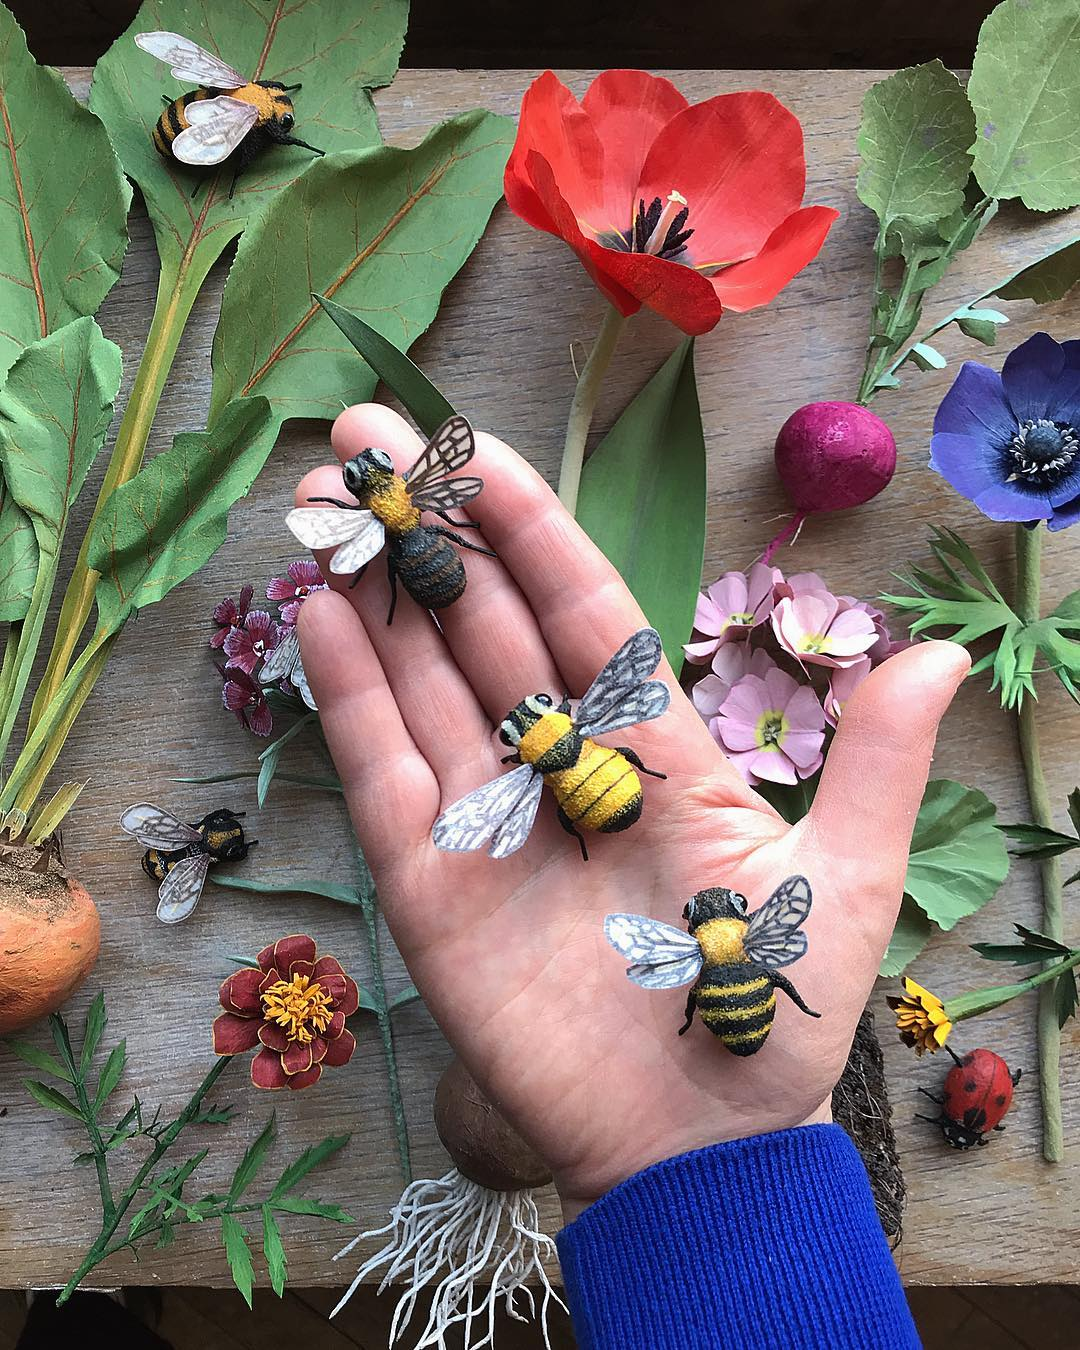 Lifelike Paper Flowers Are Crafted from the Blooms in Artist Ann Wood's Garden